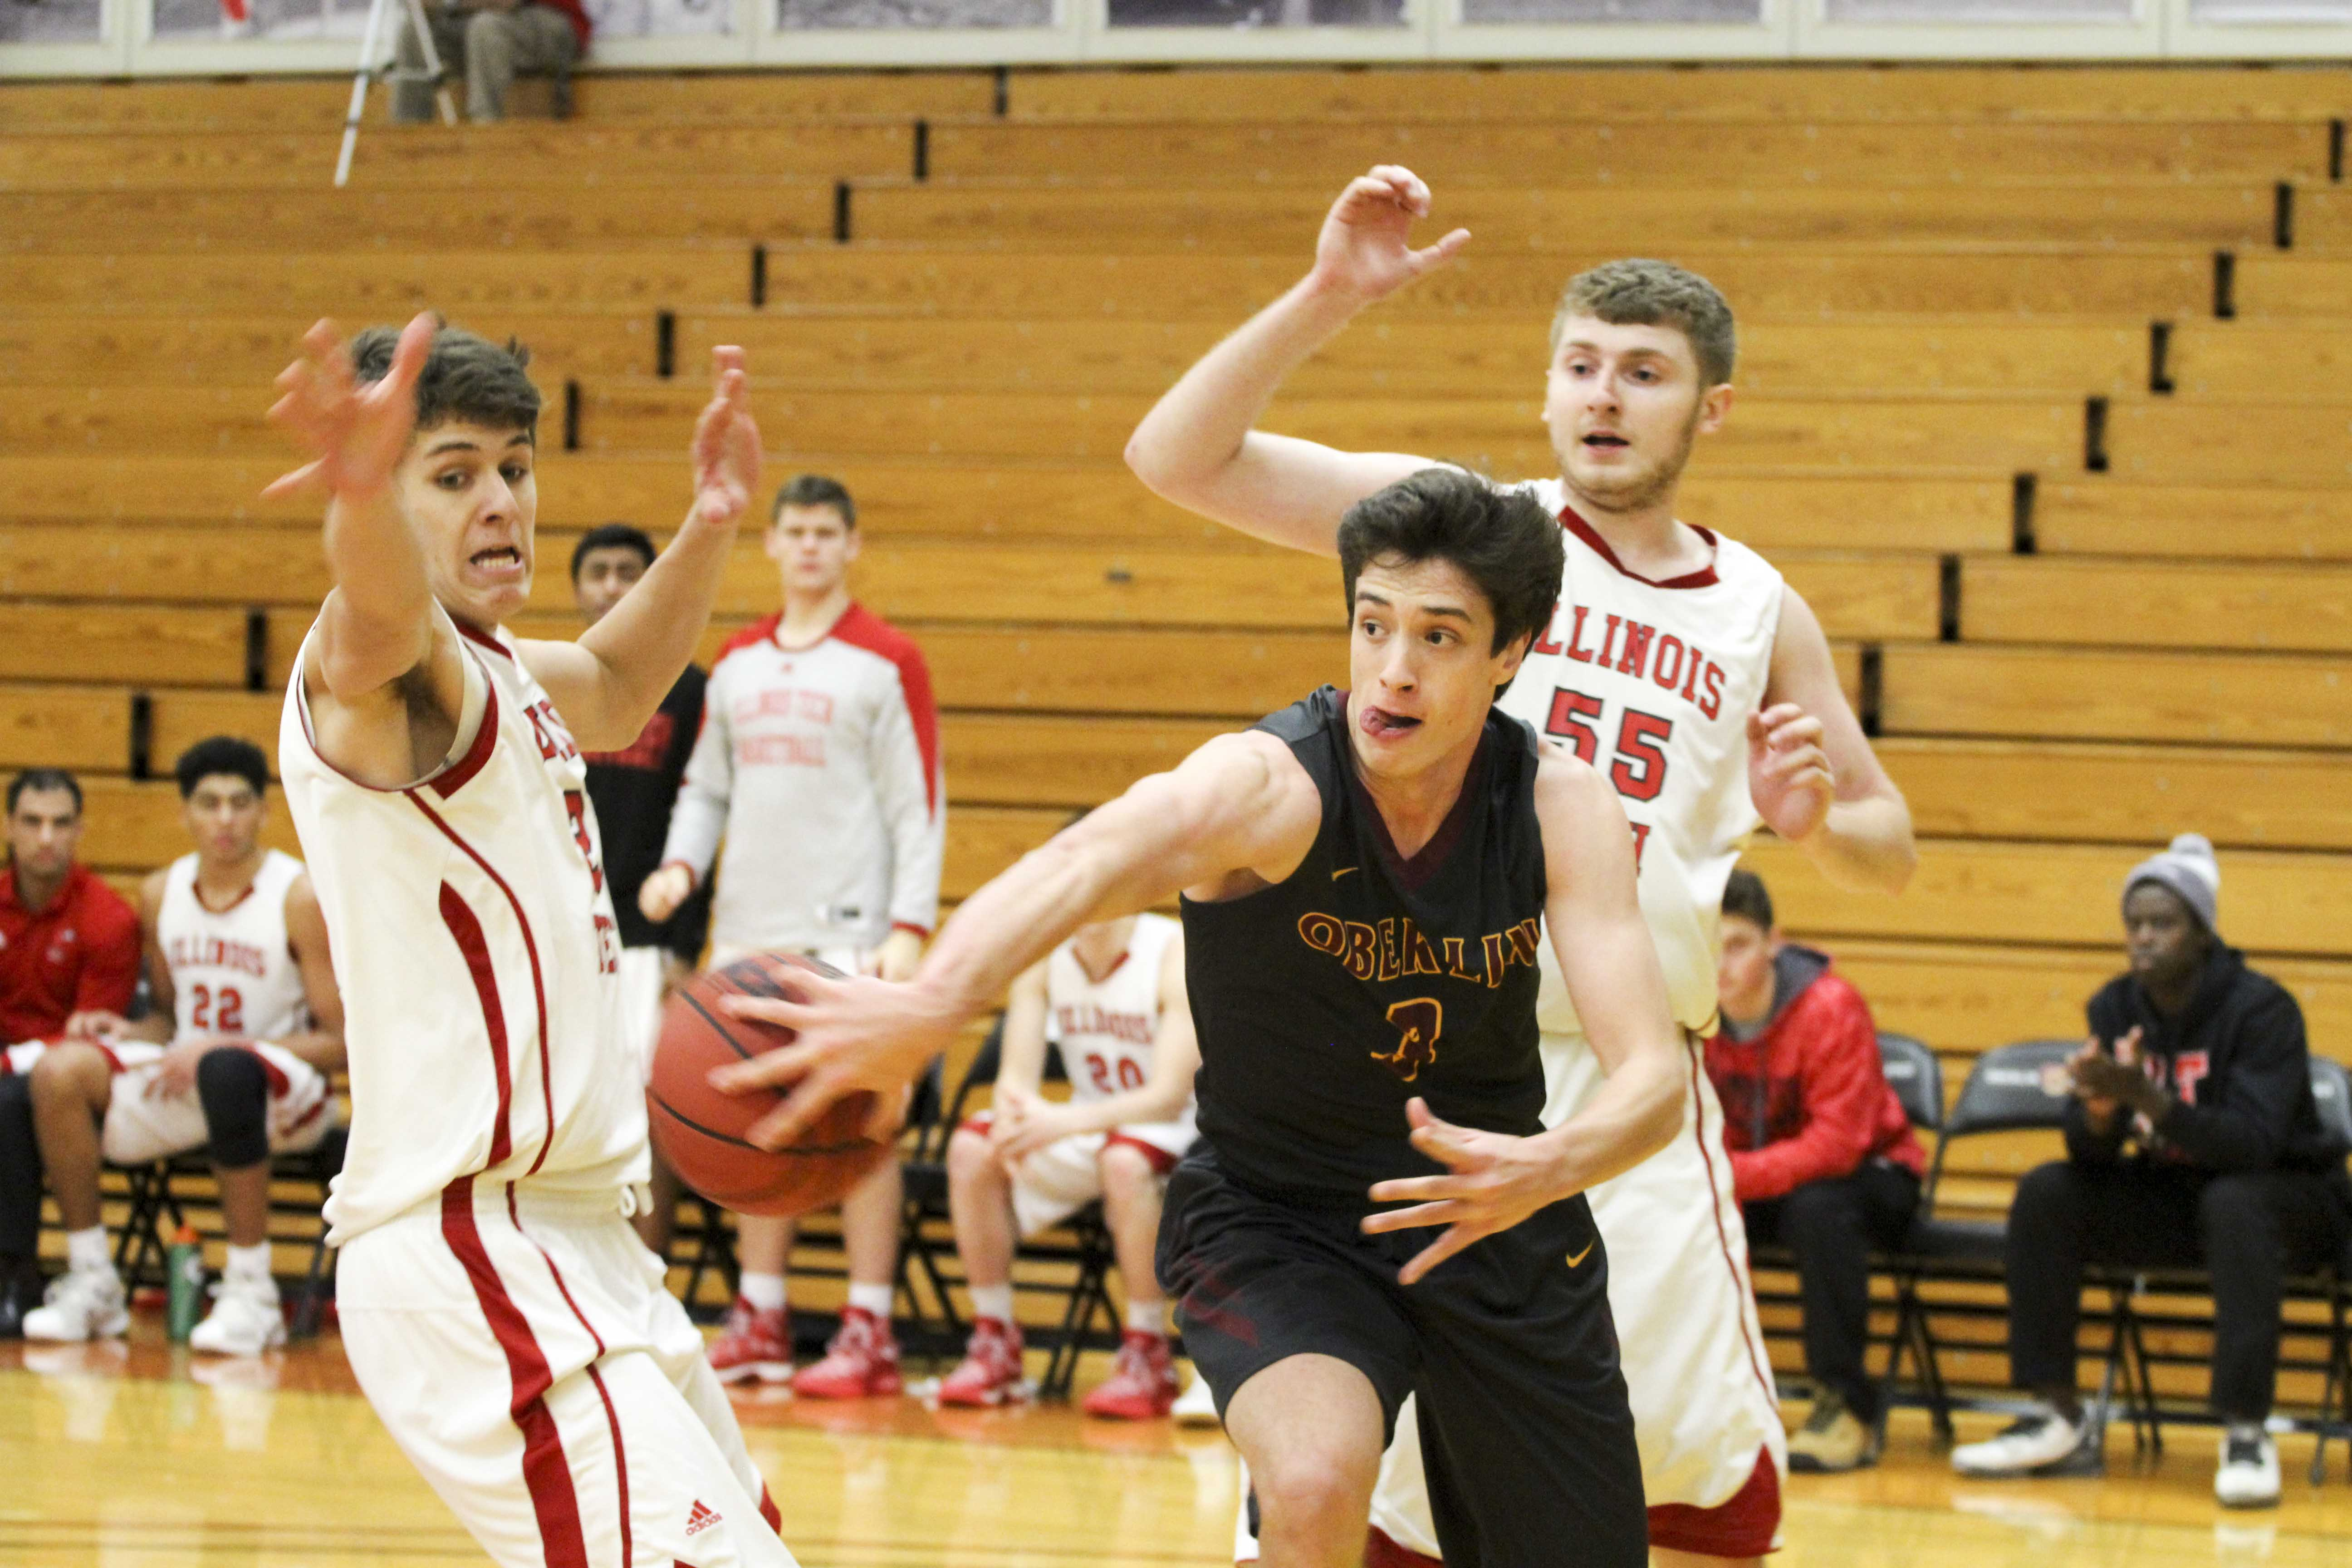 Sophomore Eli Silverman-Lloyd attempts to save the ball from going out of bounds against Illinois Institute of Technology during the Thanksgiving Classic, hosted by the Yeomen.